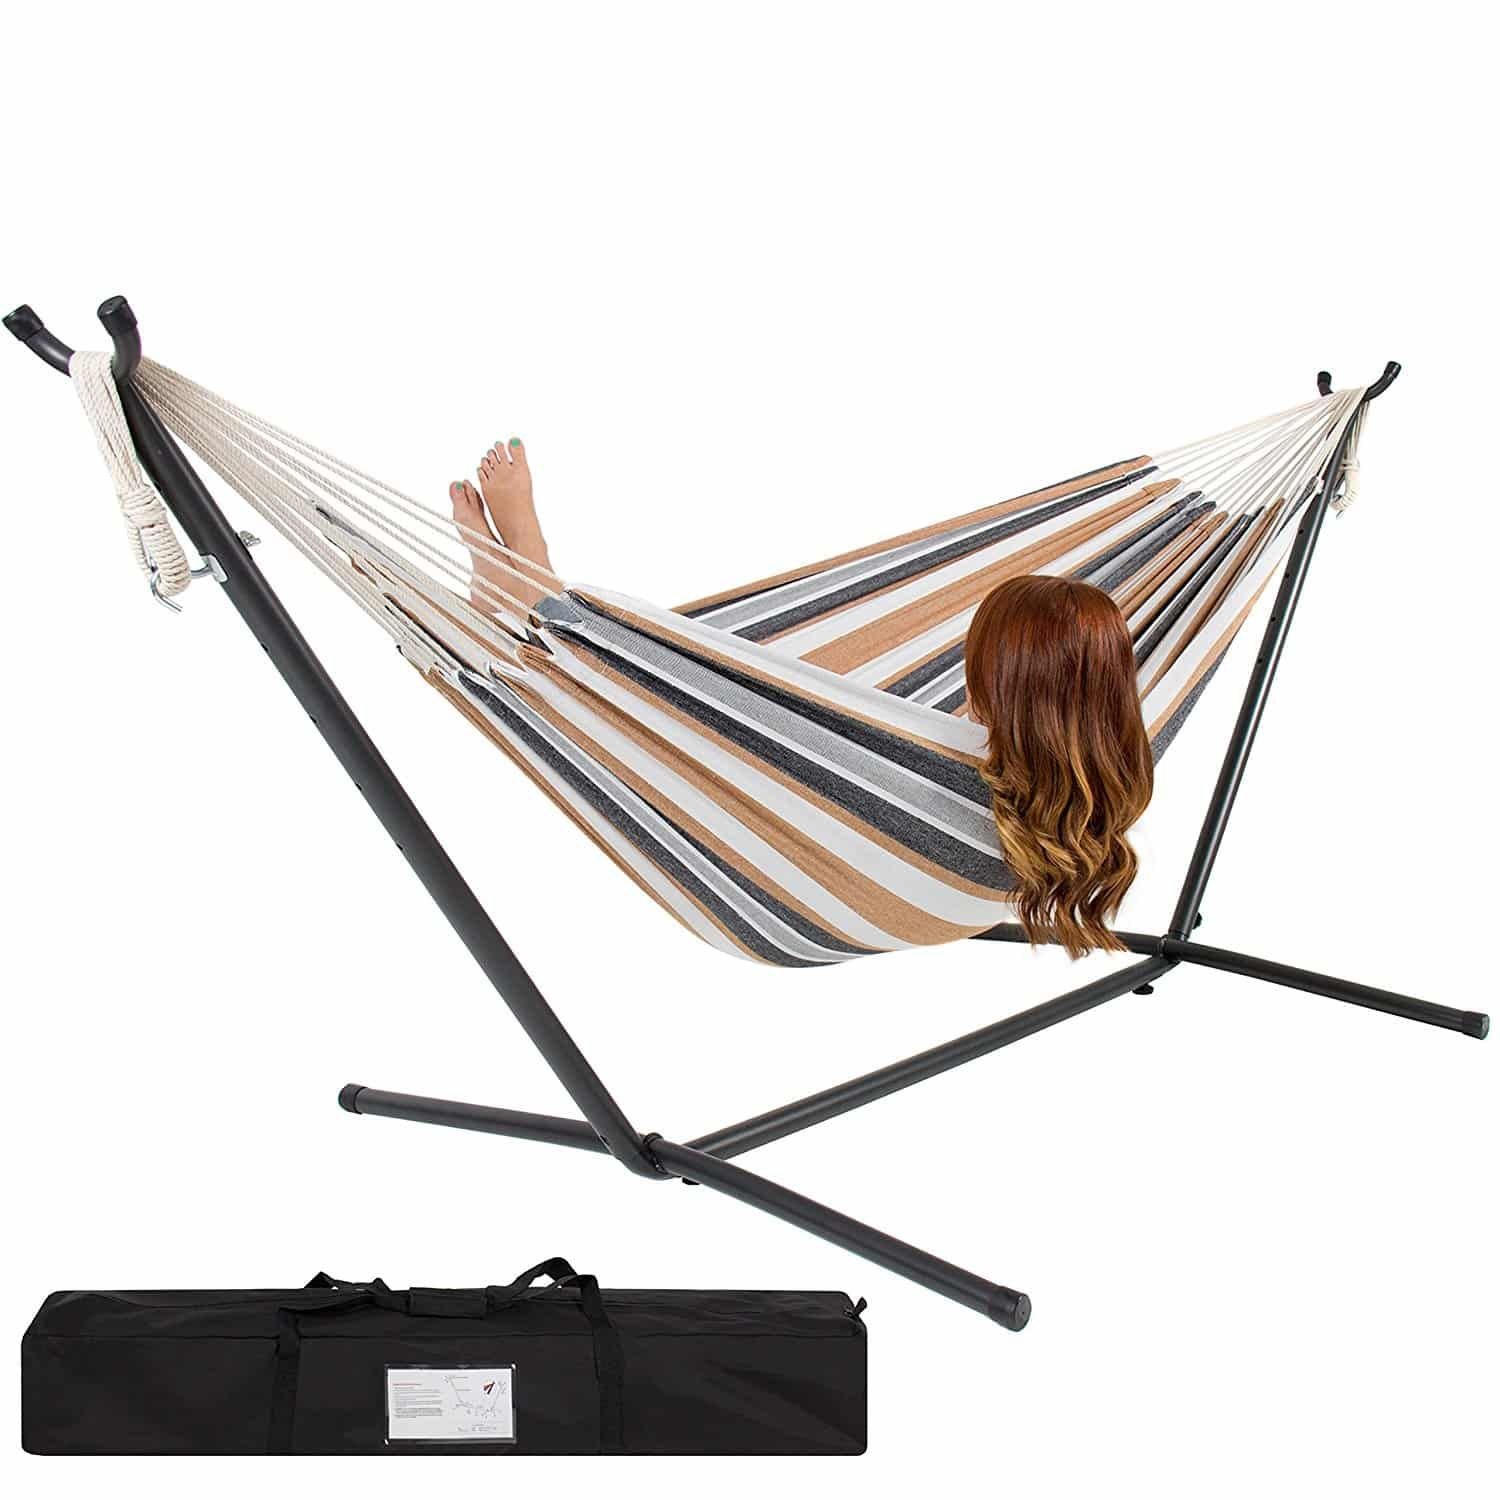 Top 10 Best Water Hammocks in 2020 Reviews that you can